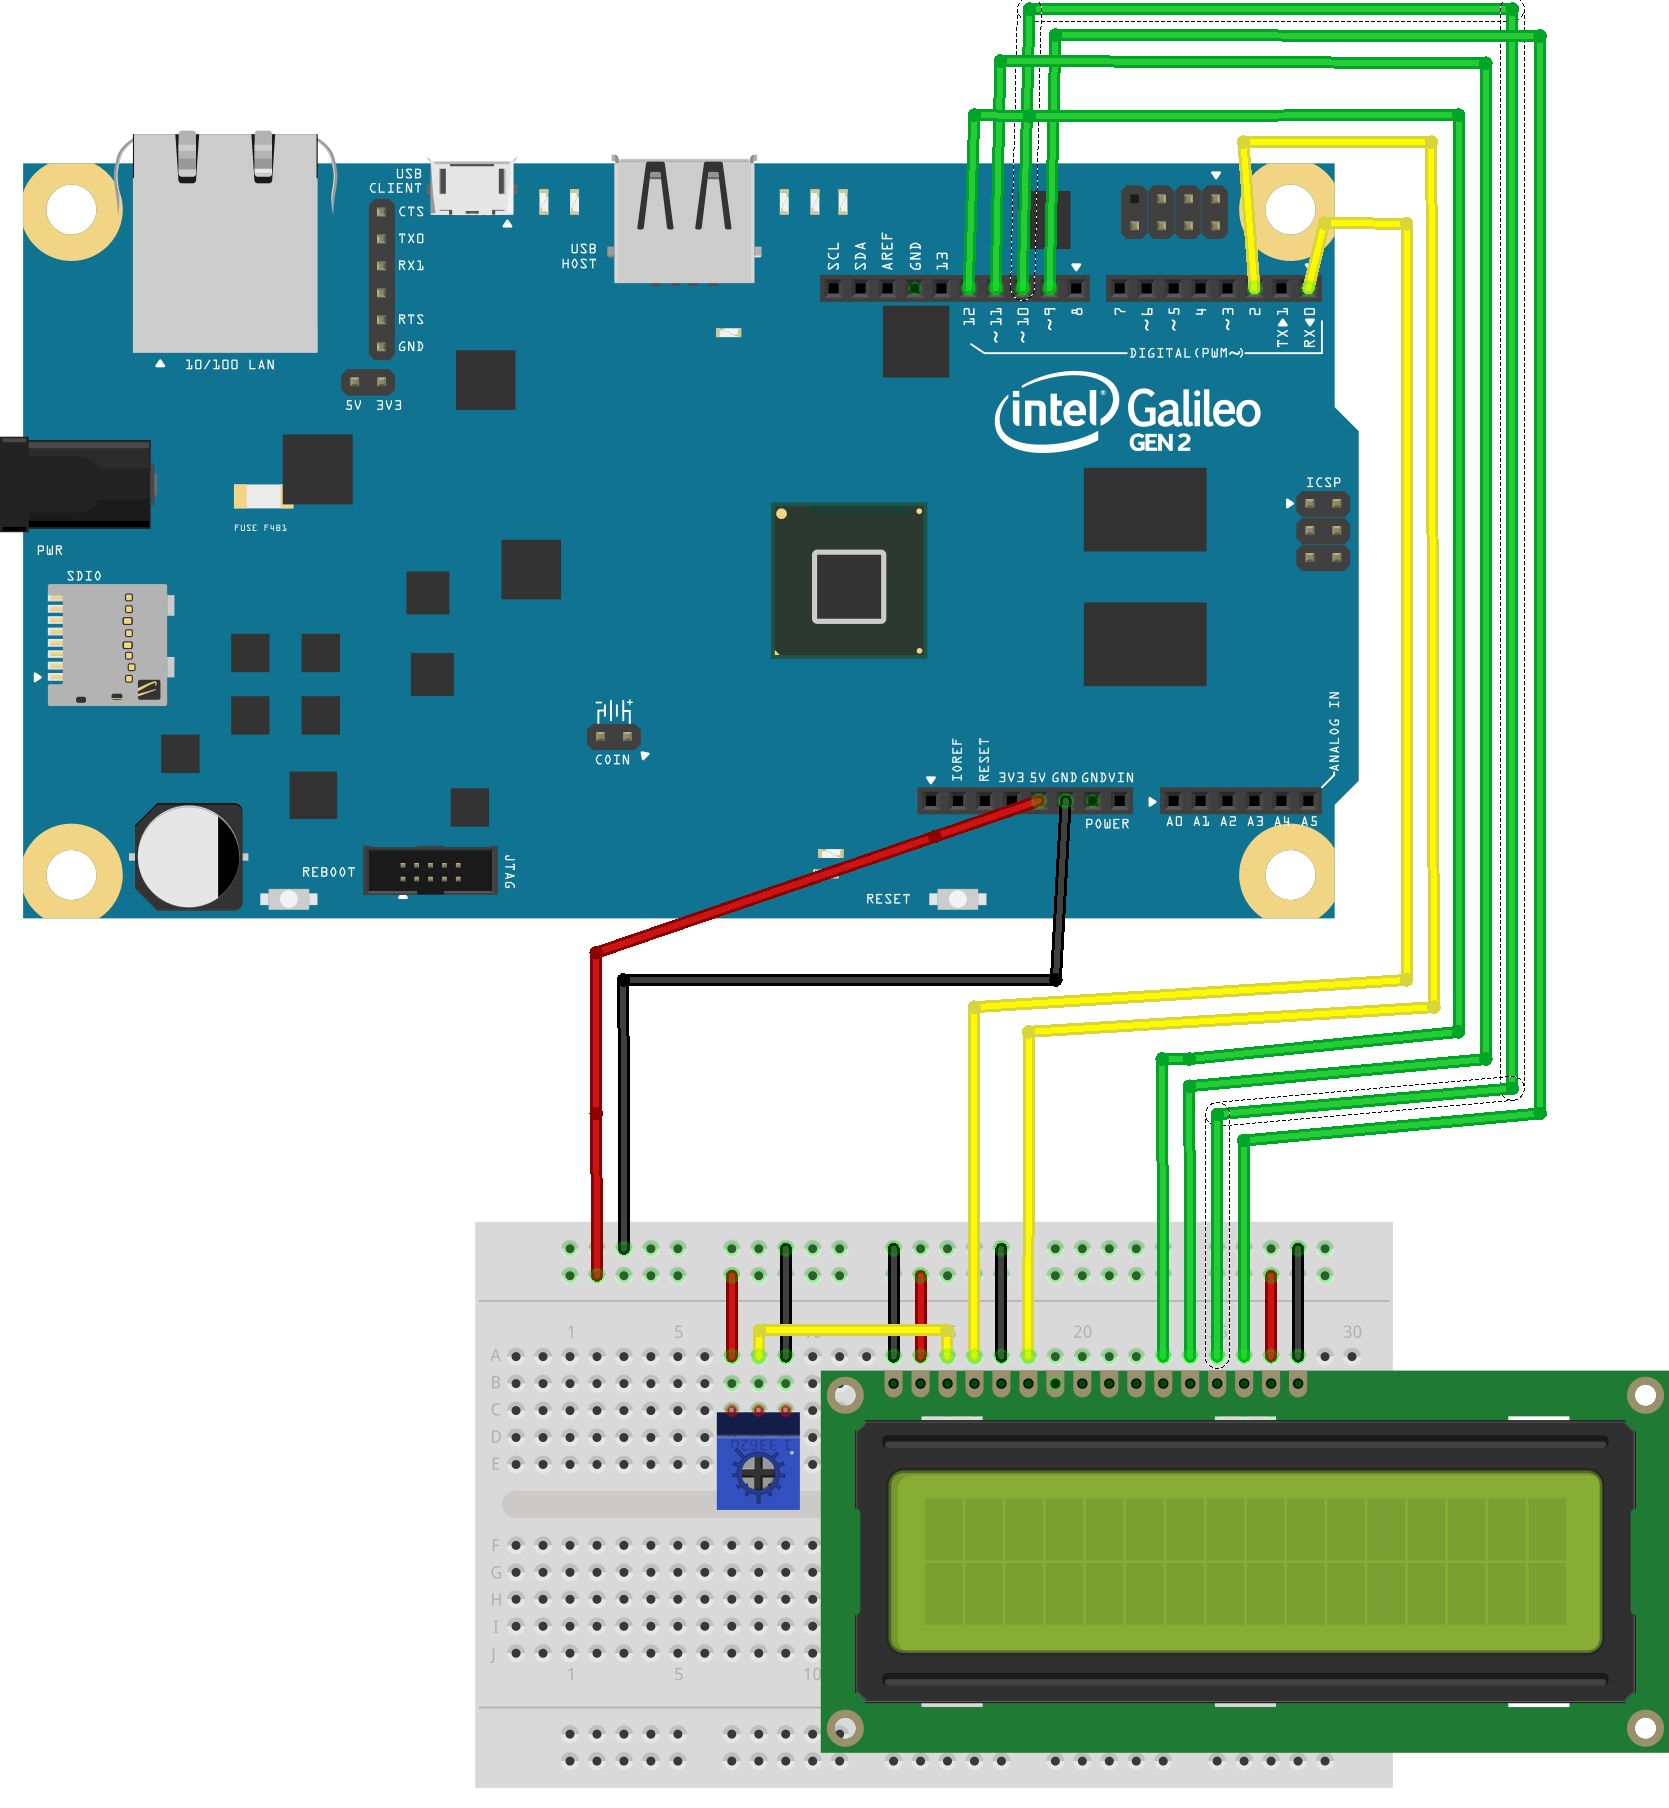 iot2016:labs:lcdgalileo1.png